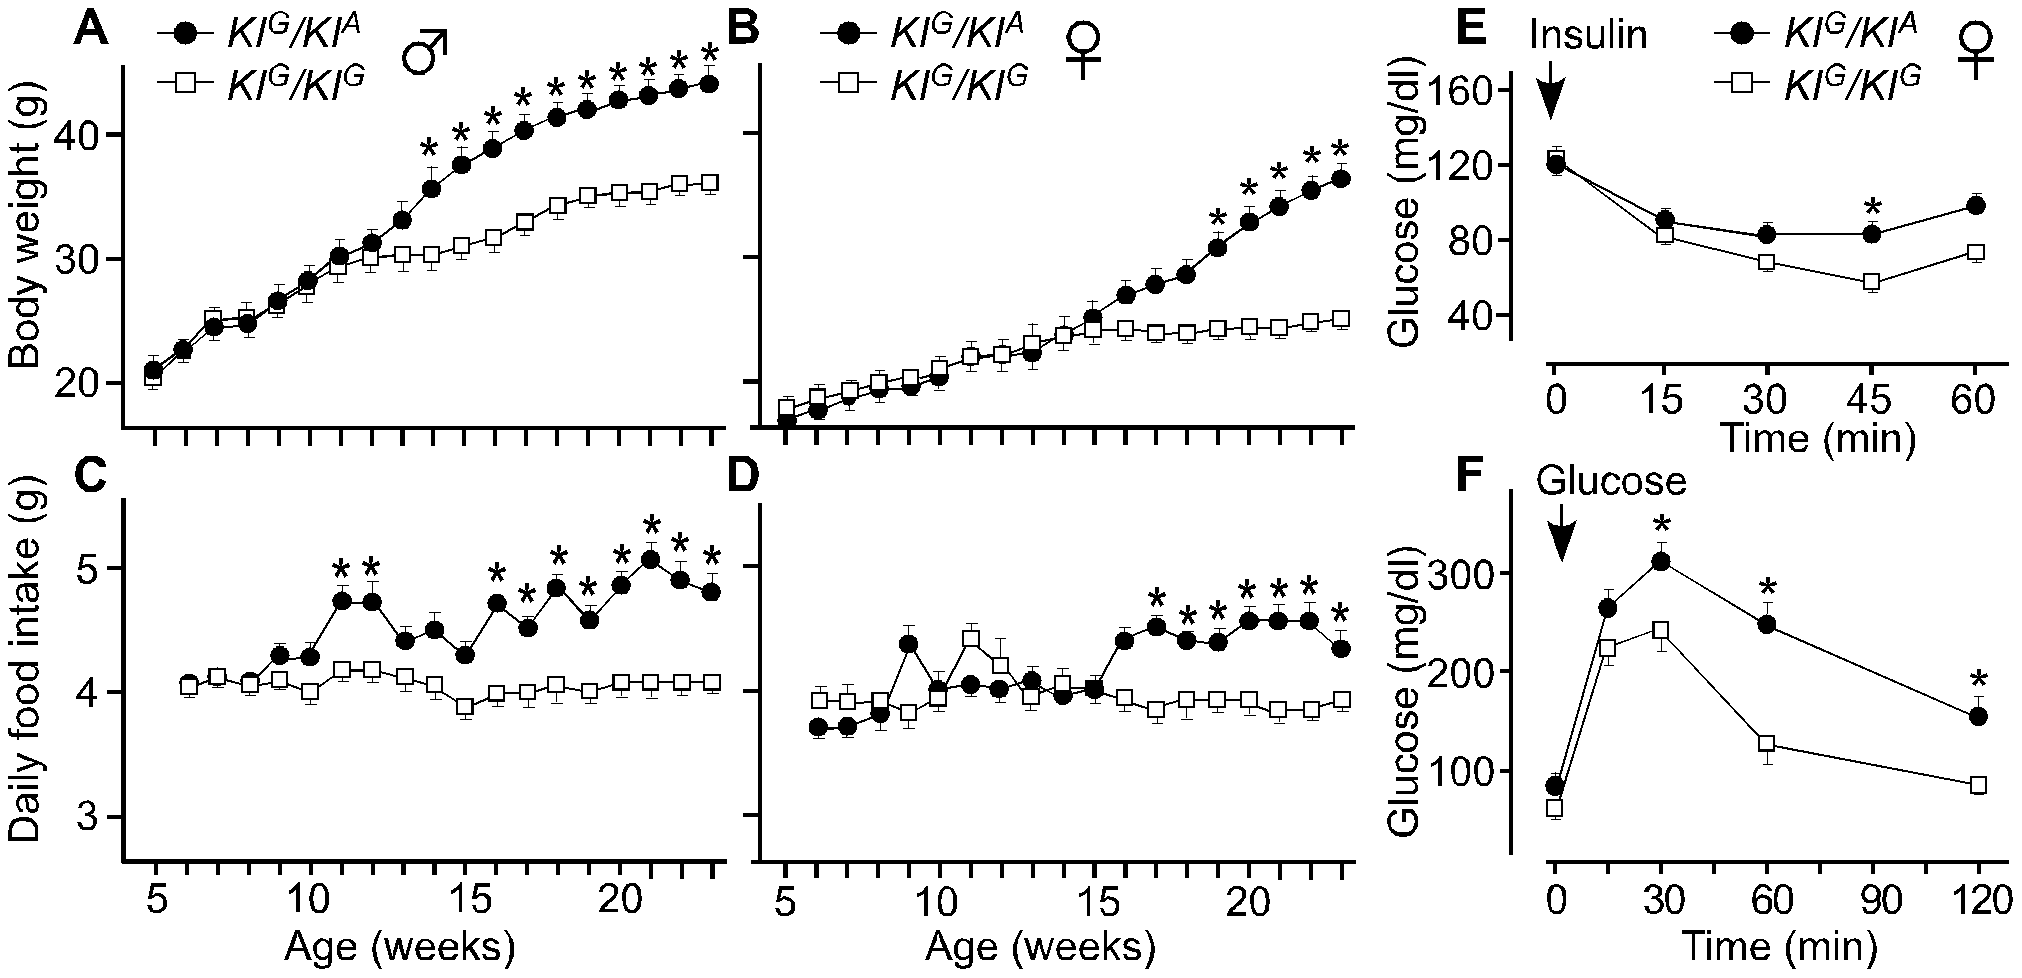 Body weight, daily food intake, and insulin and glucose tolerance of knockin mice.